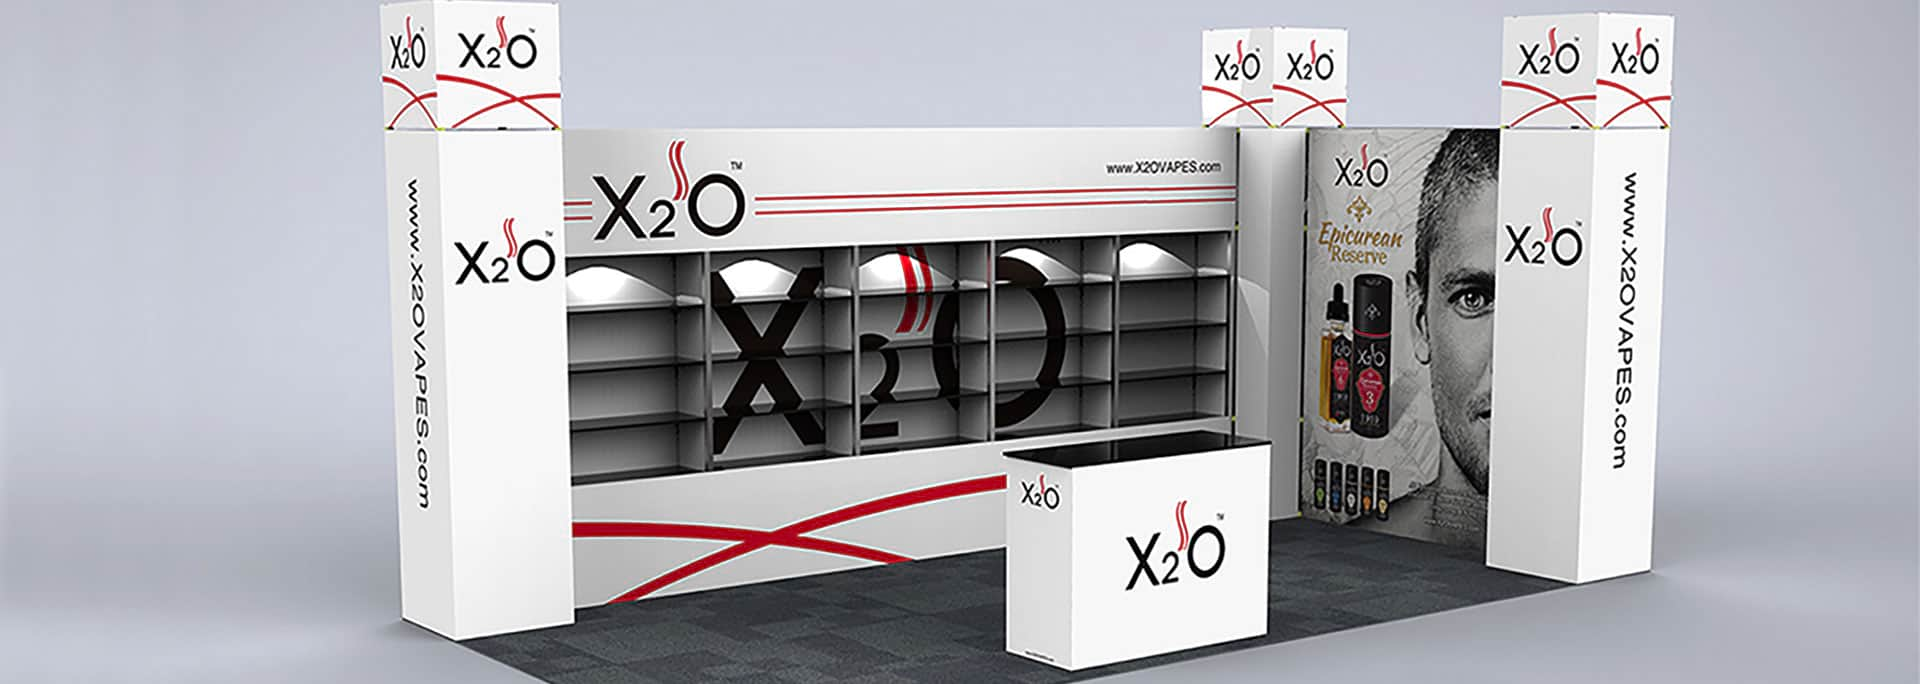 Modular Exhibition Stand Job : Benefits of modular exhibition stands t systems